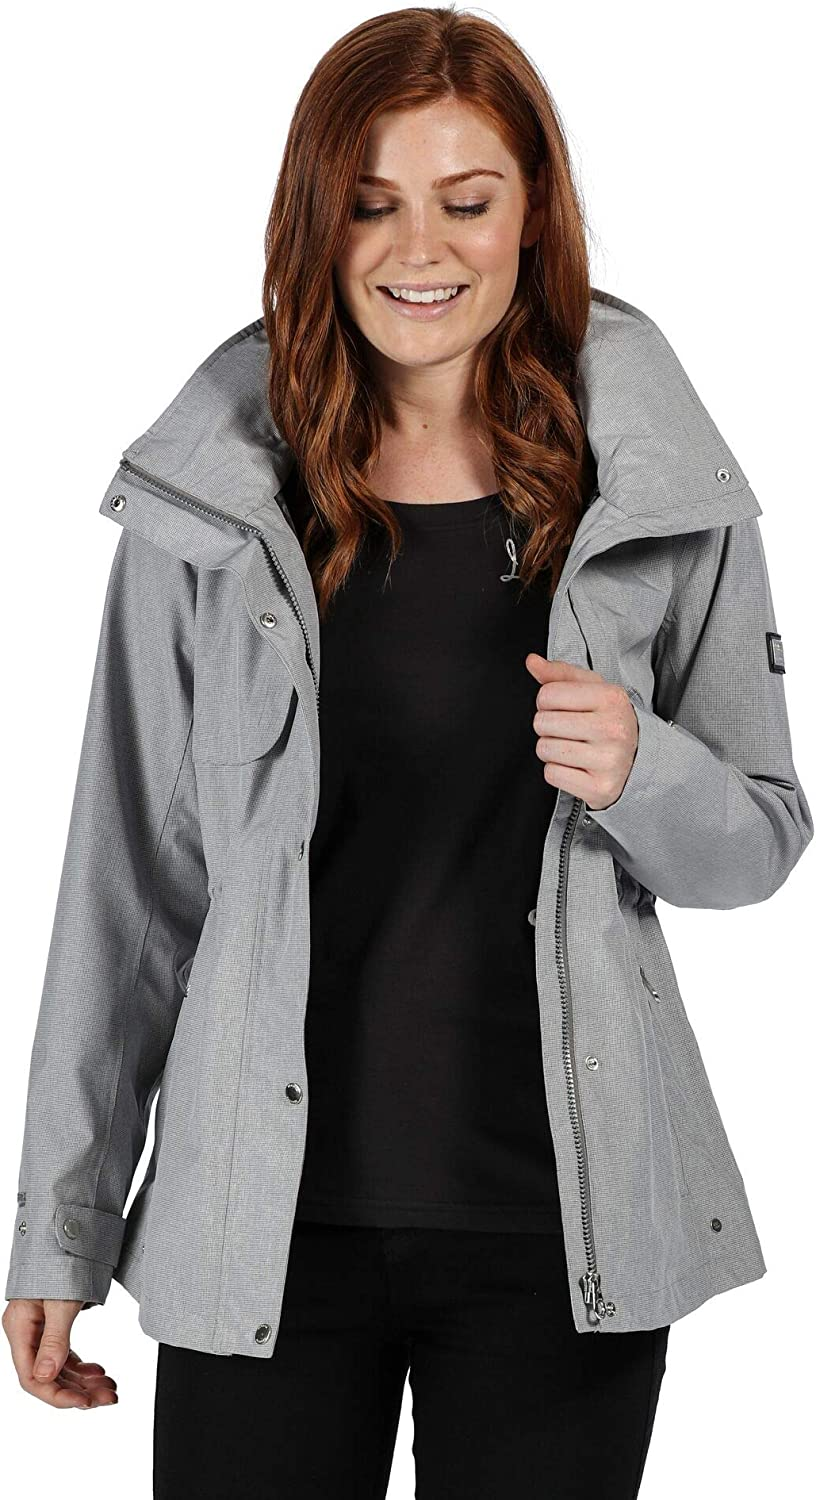 Regatta Womens Narelle Breathable With Packaway Hood /& Studded Back Vents Jackets Waterproof Shell